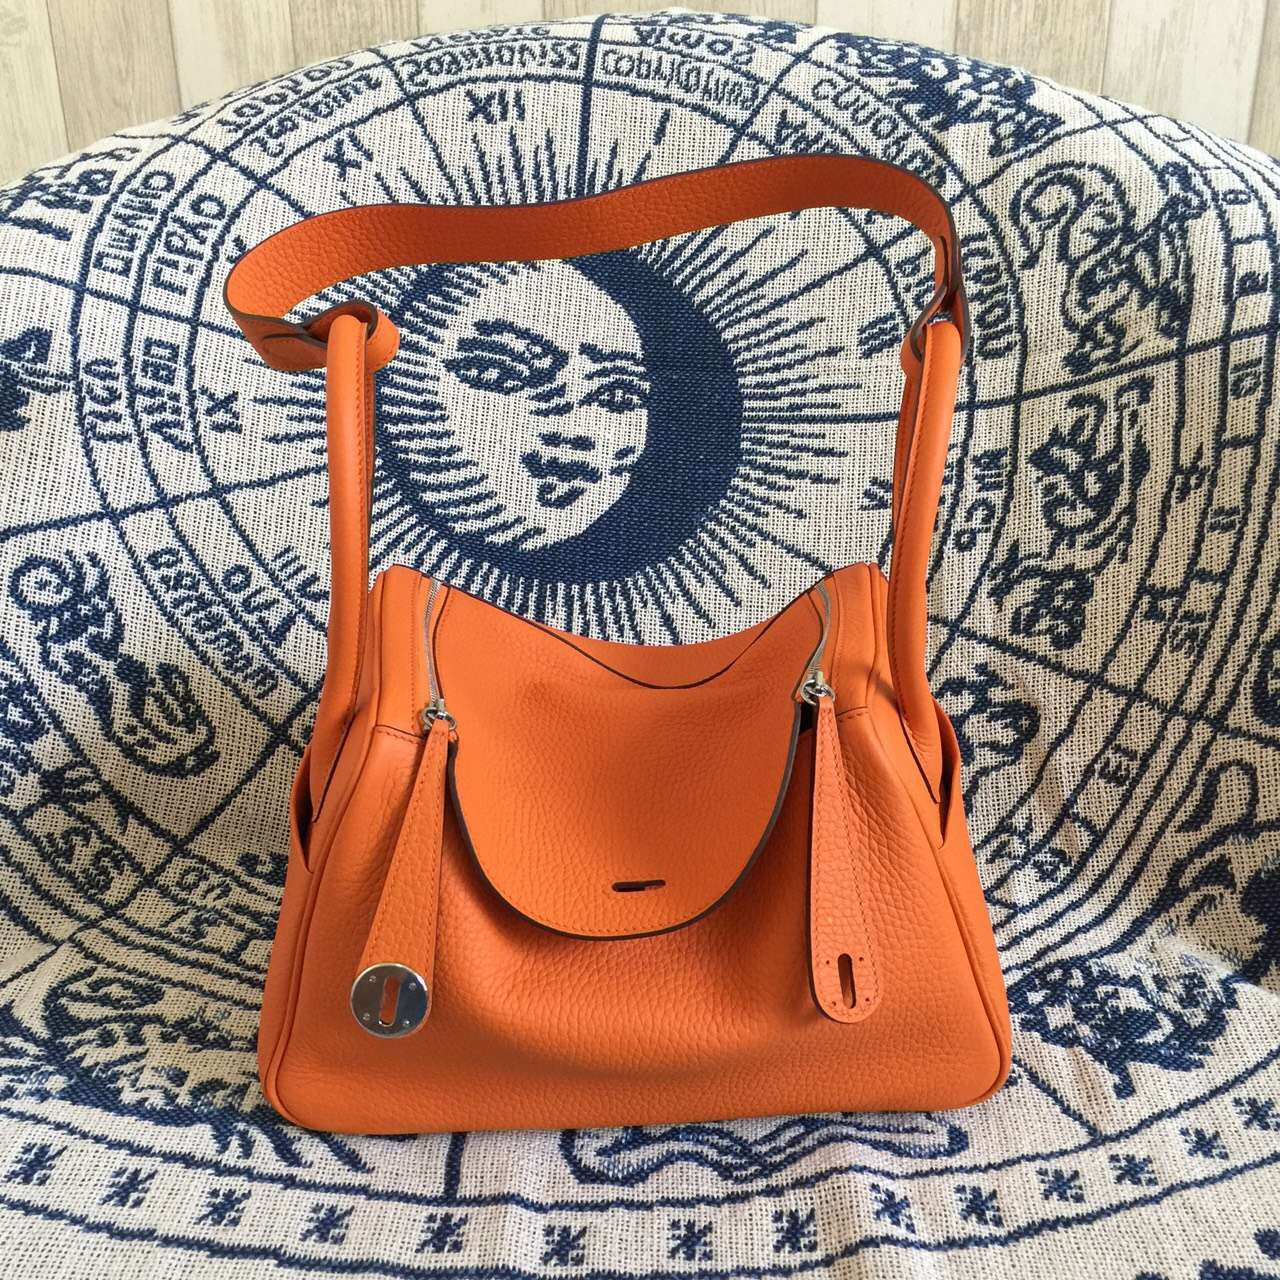 Discount Hermes Lindy Bag 26CM Orange TC Calfskin Leather Women\u0026#39;s ...